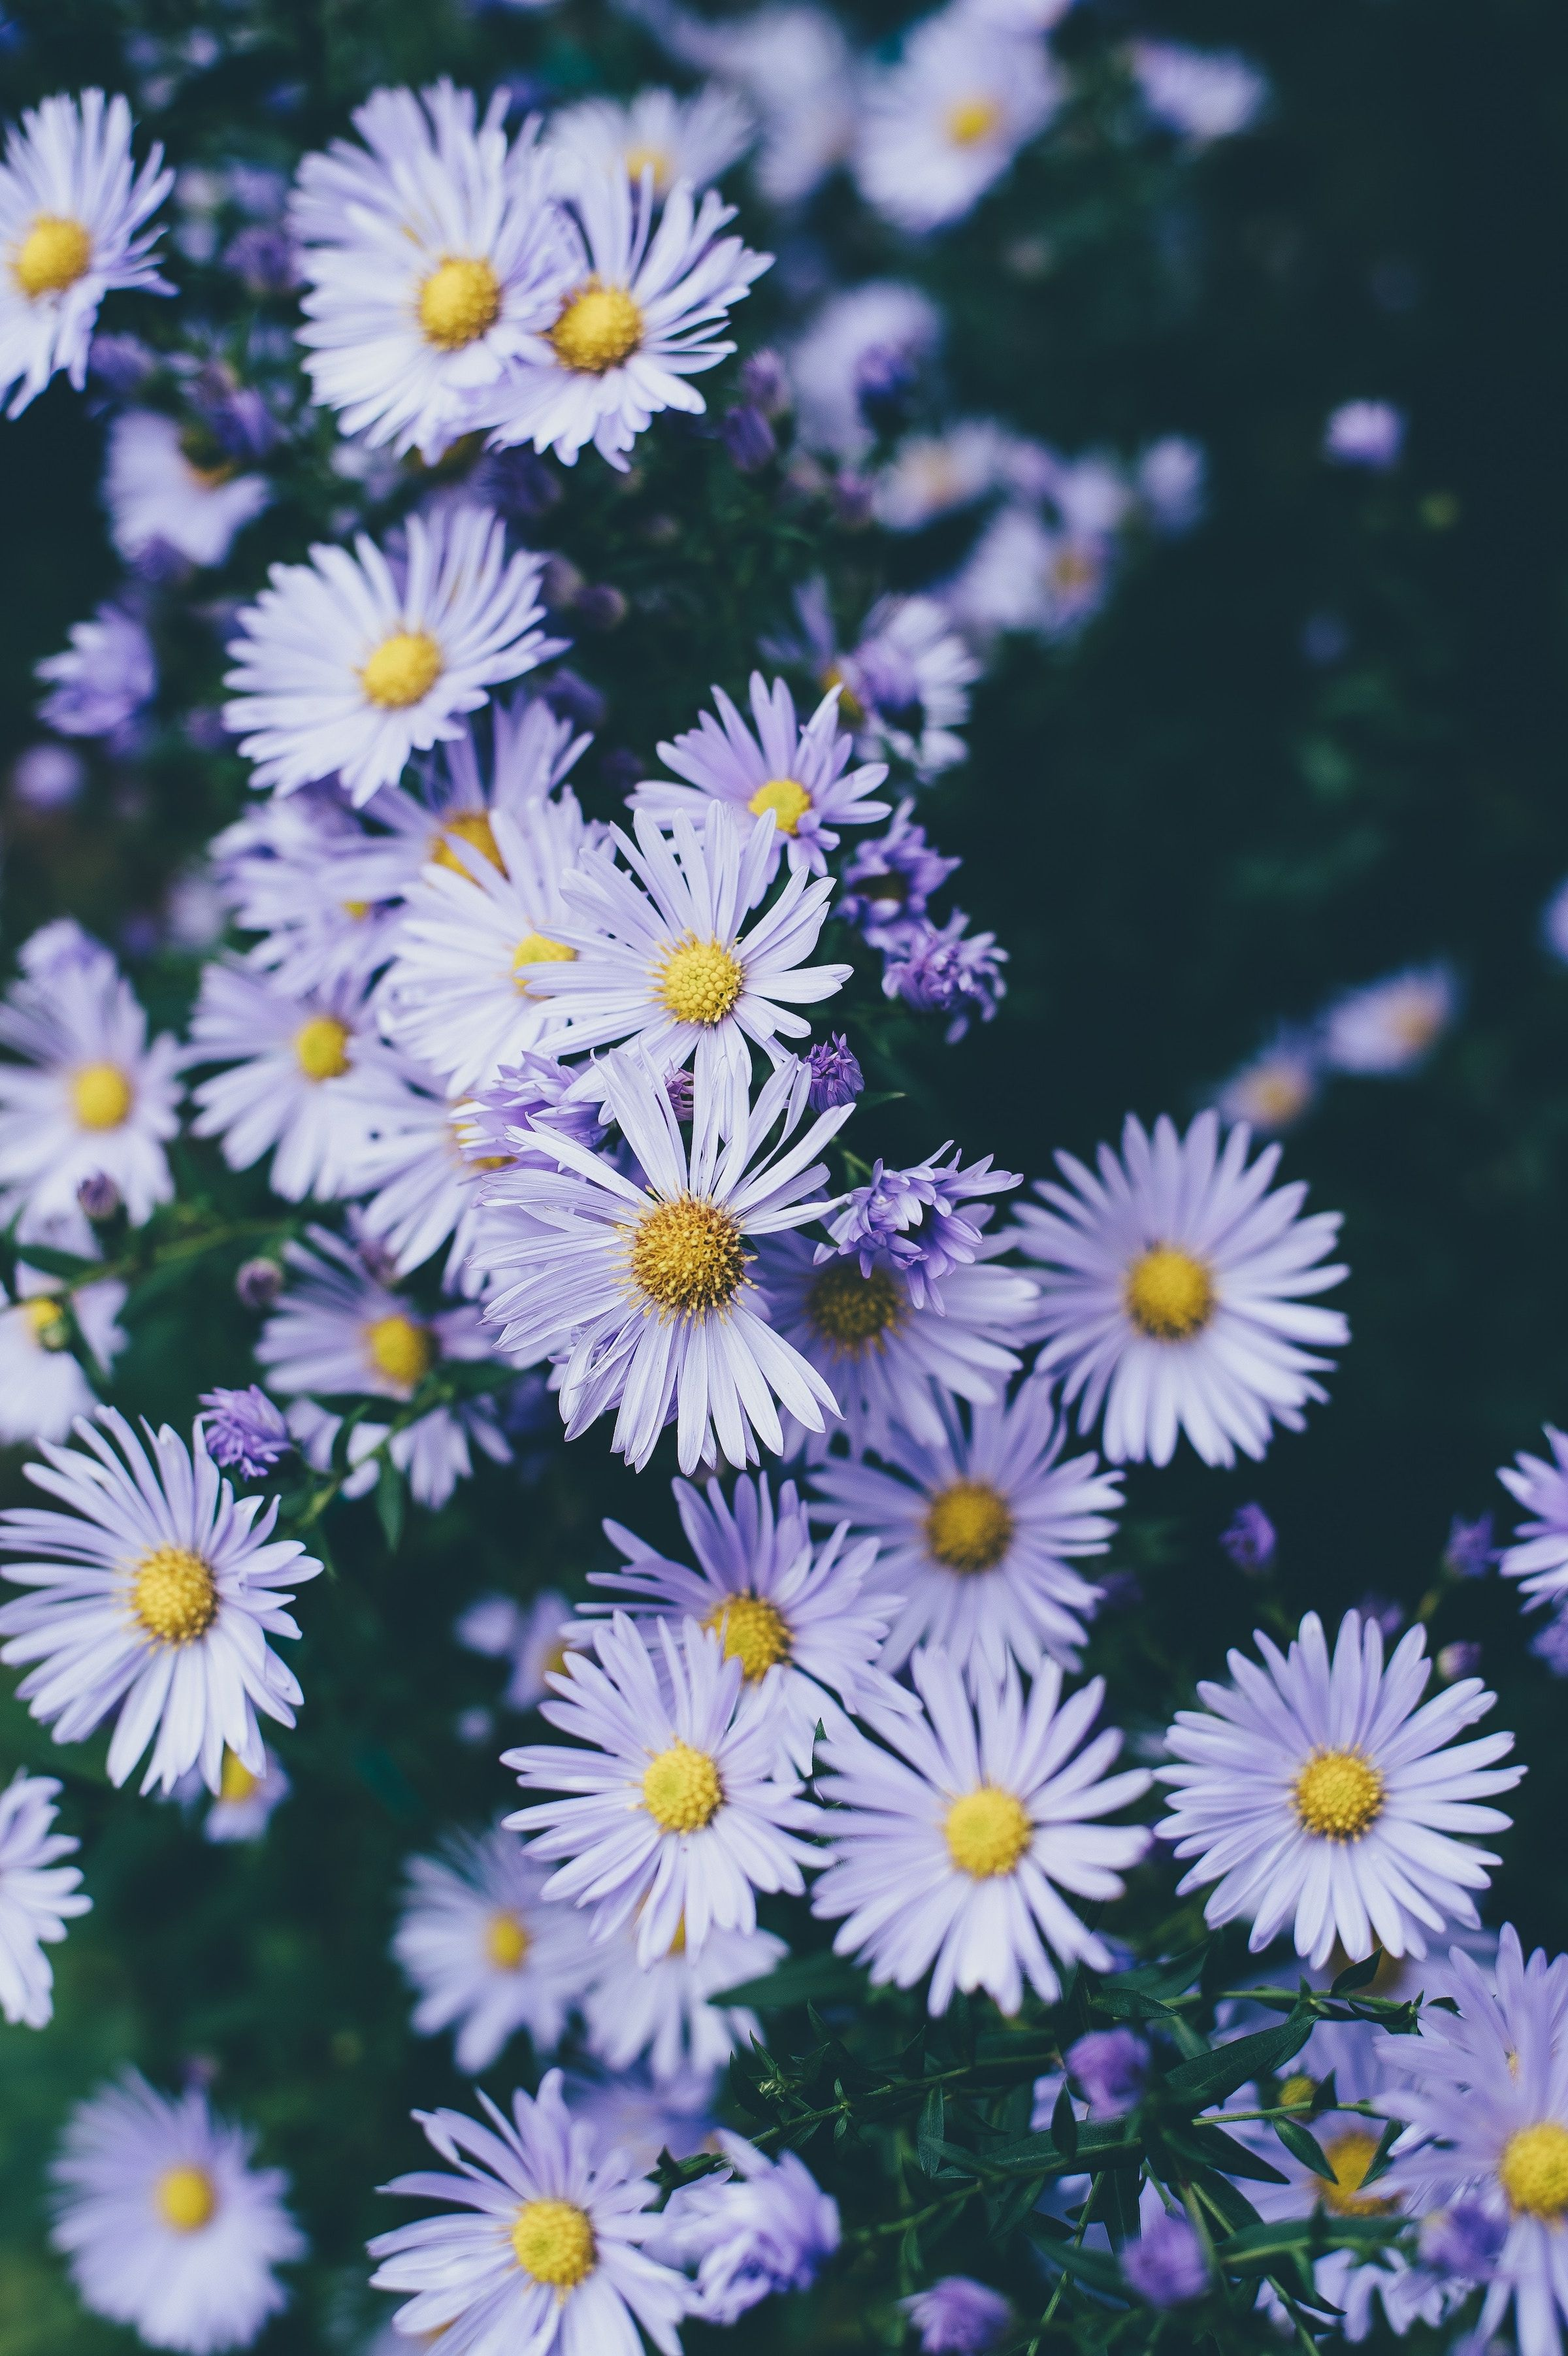 Aster In 2020 Flower Iphone Wallpaper Spring Wallpaper Flower Pictures